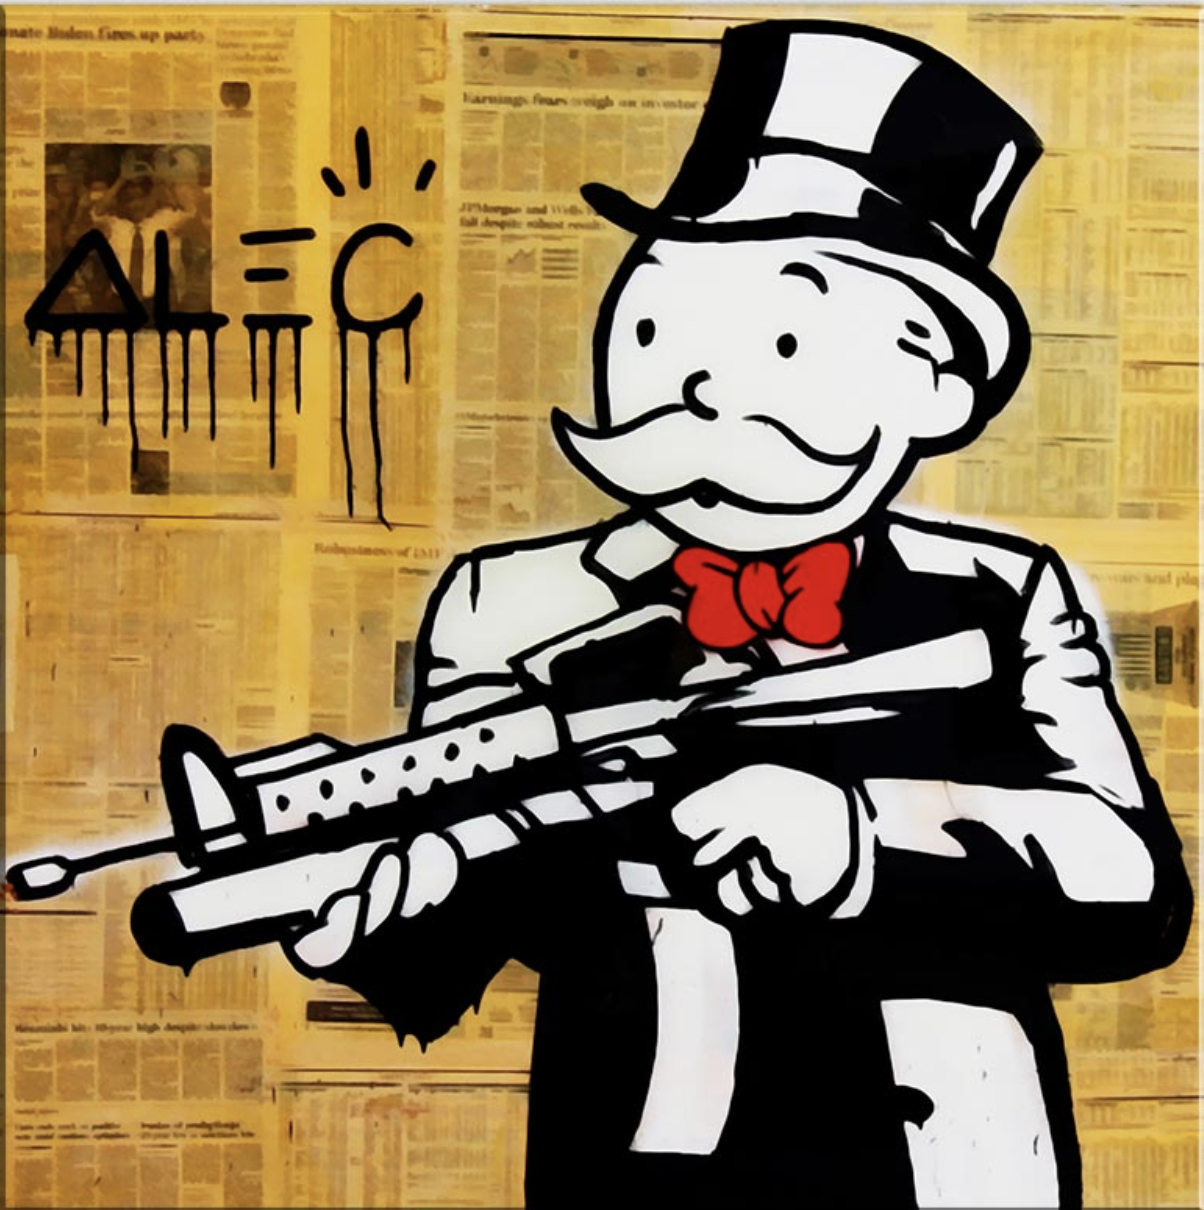 Monopoly Gangster Graphic Design Images In 2019 Monopoly Art